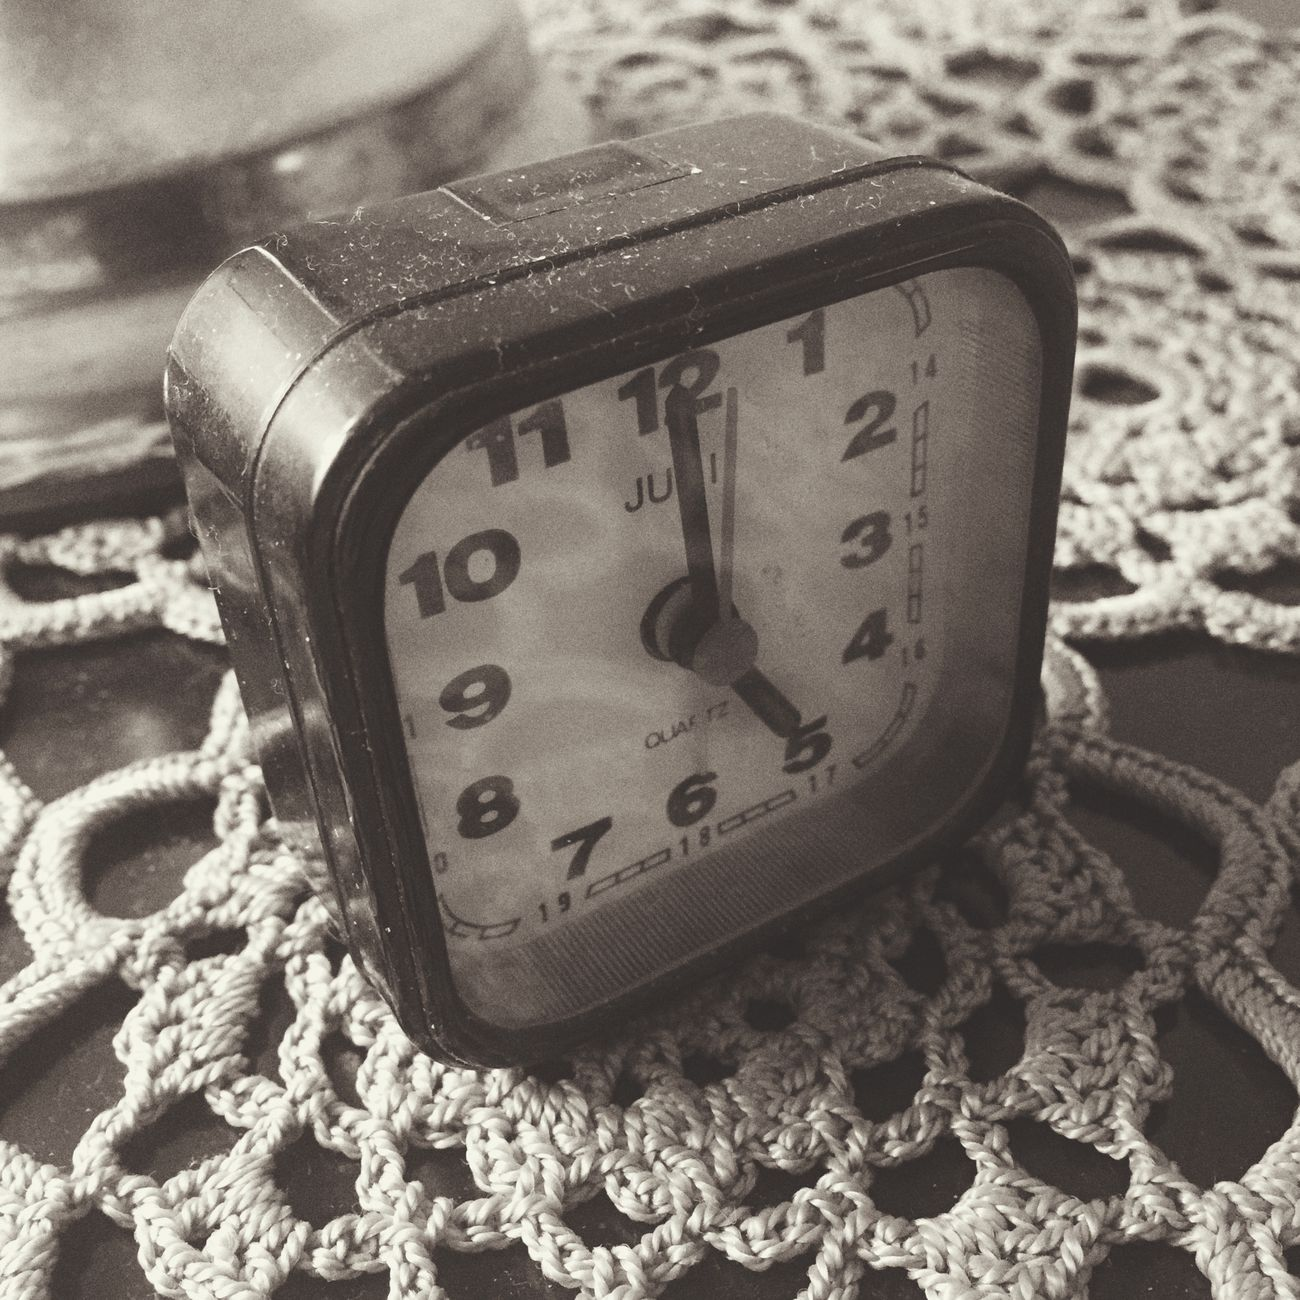 Clocks Clock Time Quality Time The Passing Of Time AlarmClock